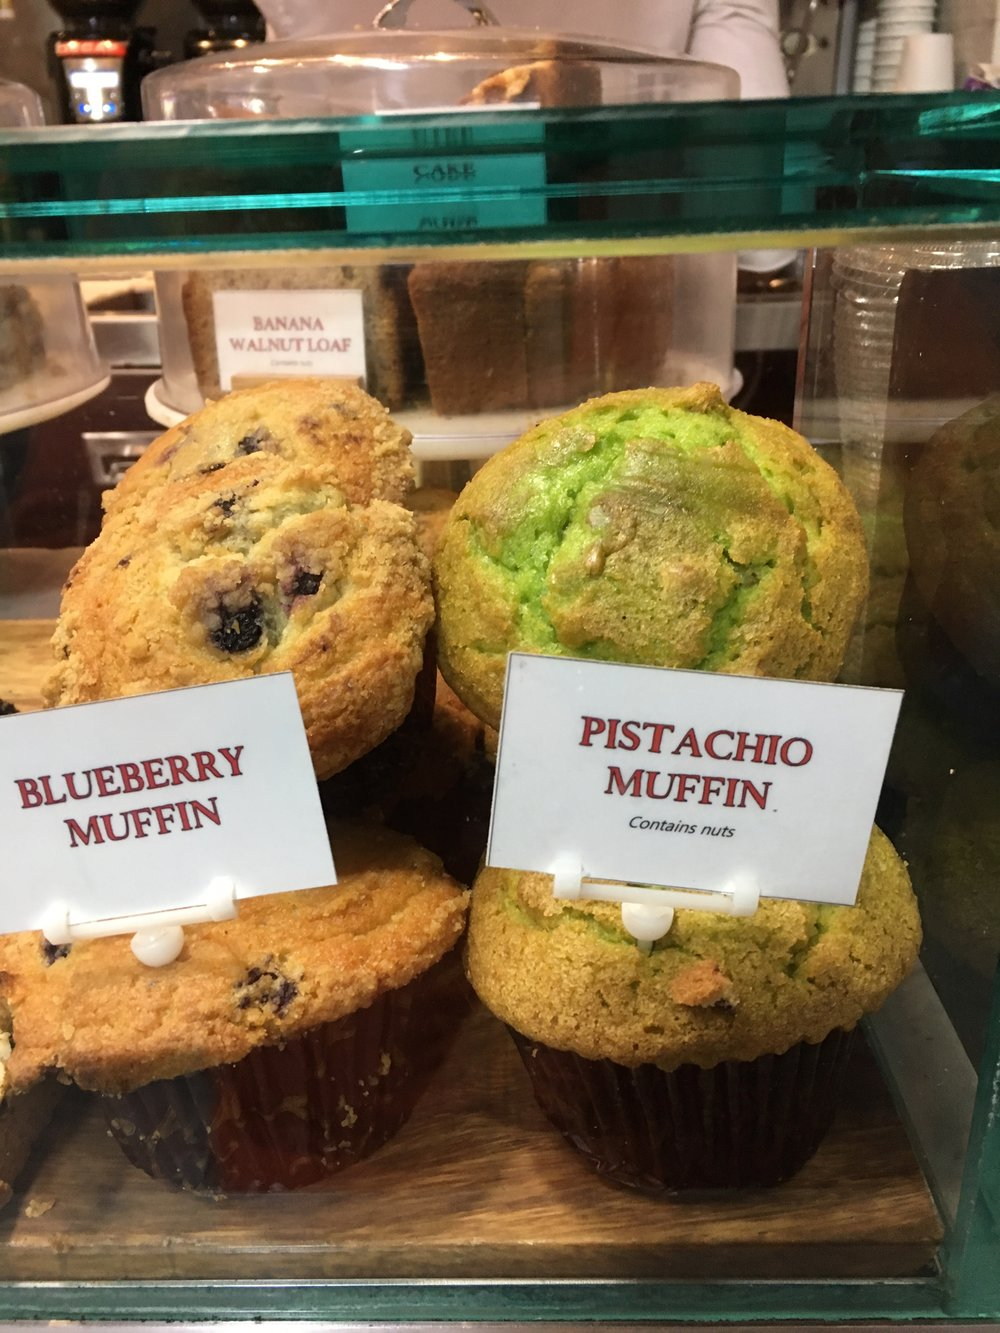 And a lurid pistachio muffin